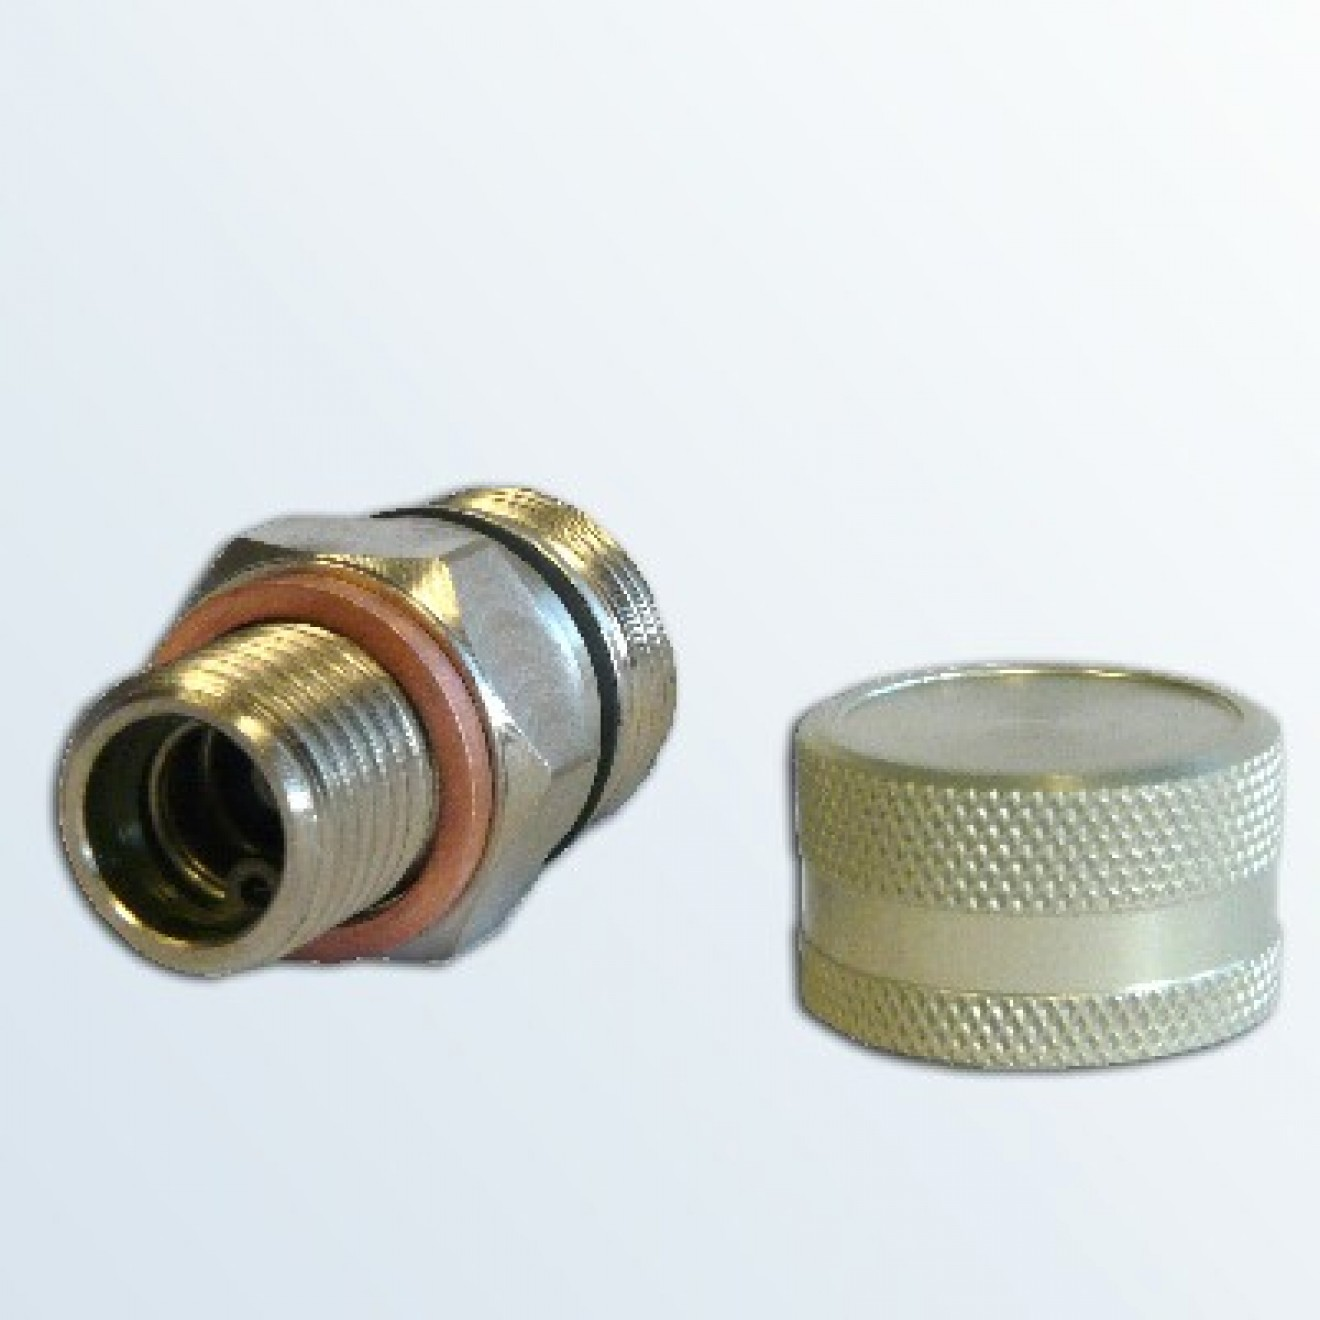 stahlbus Oil Drain Valve M14x1.5x12mm, steel